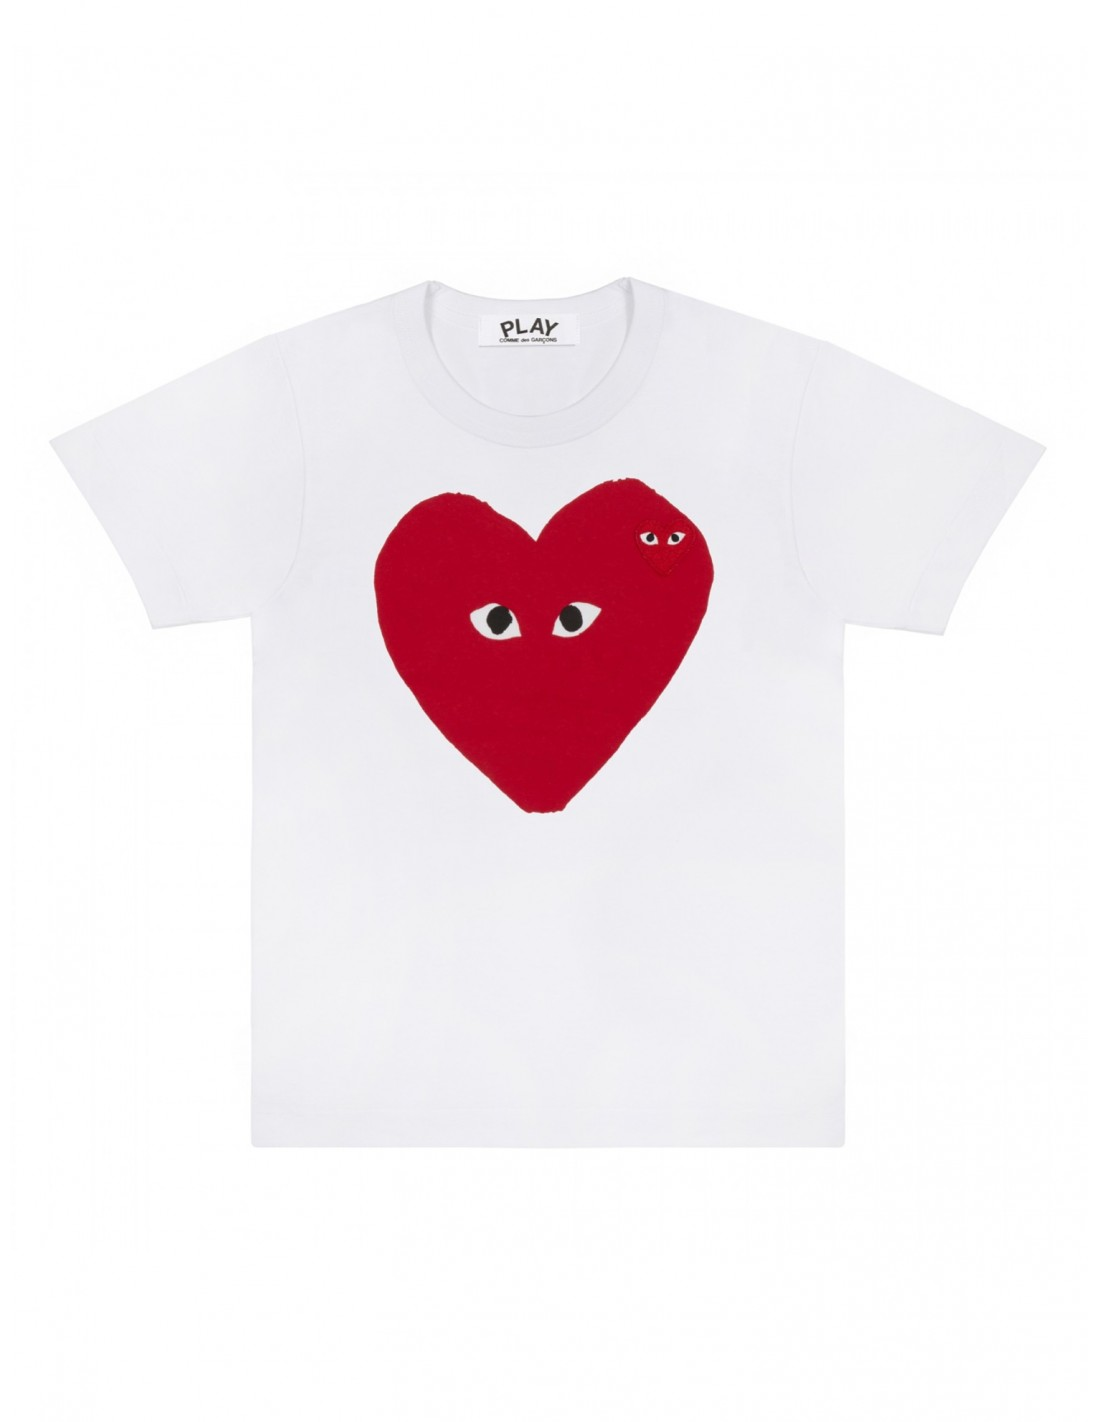 White Tee With A Big Red Heart With Small Eyes Comme Des Garcons